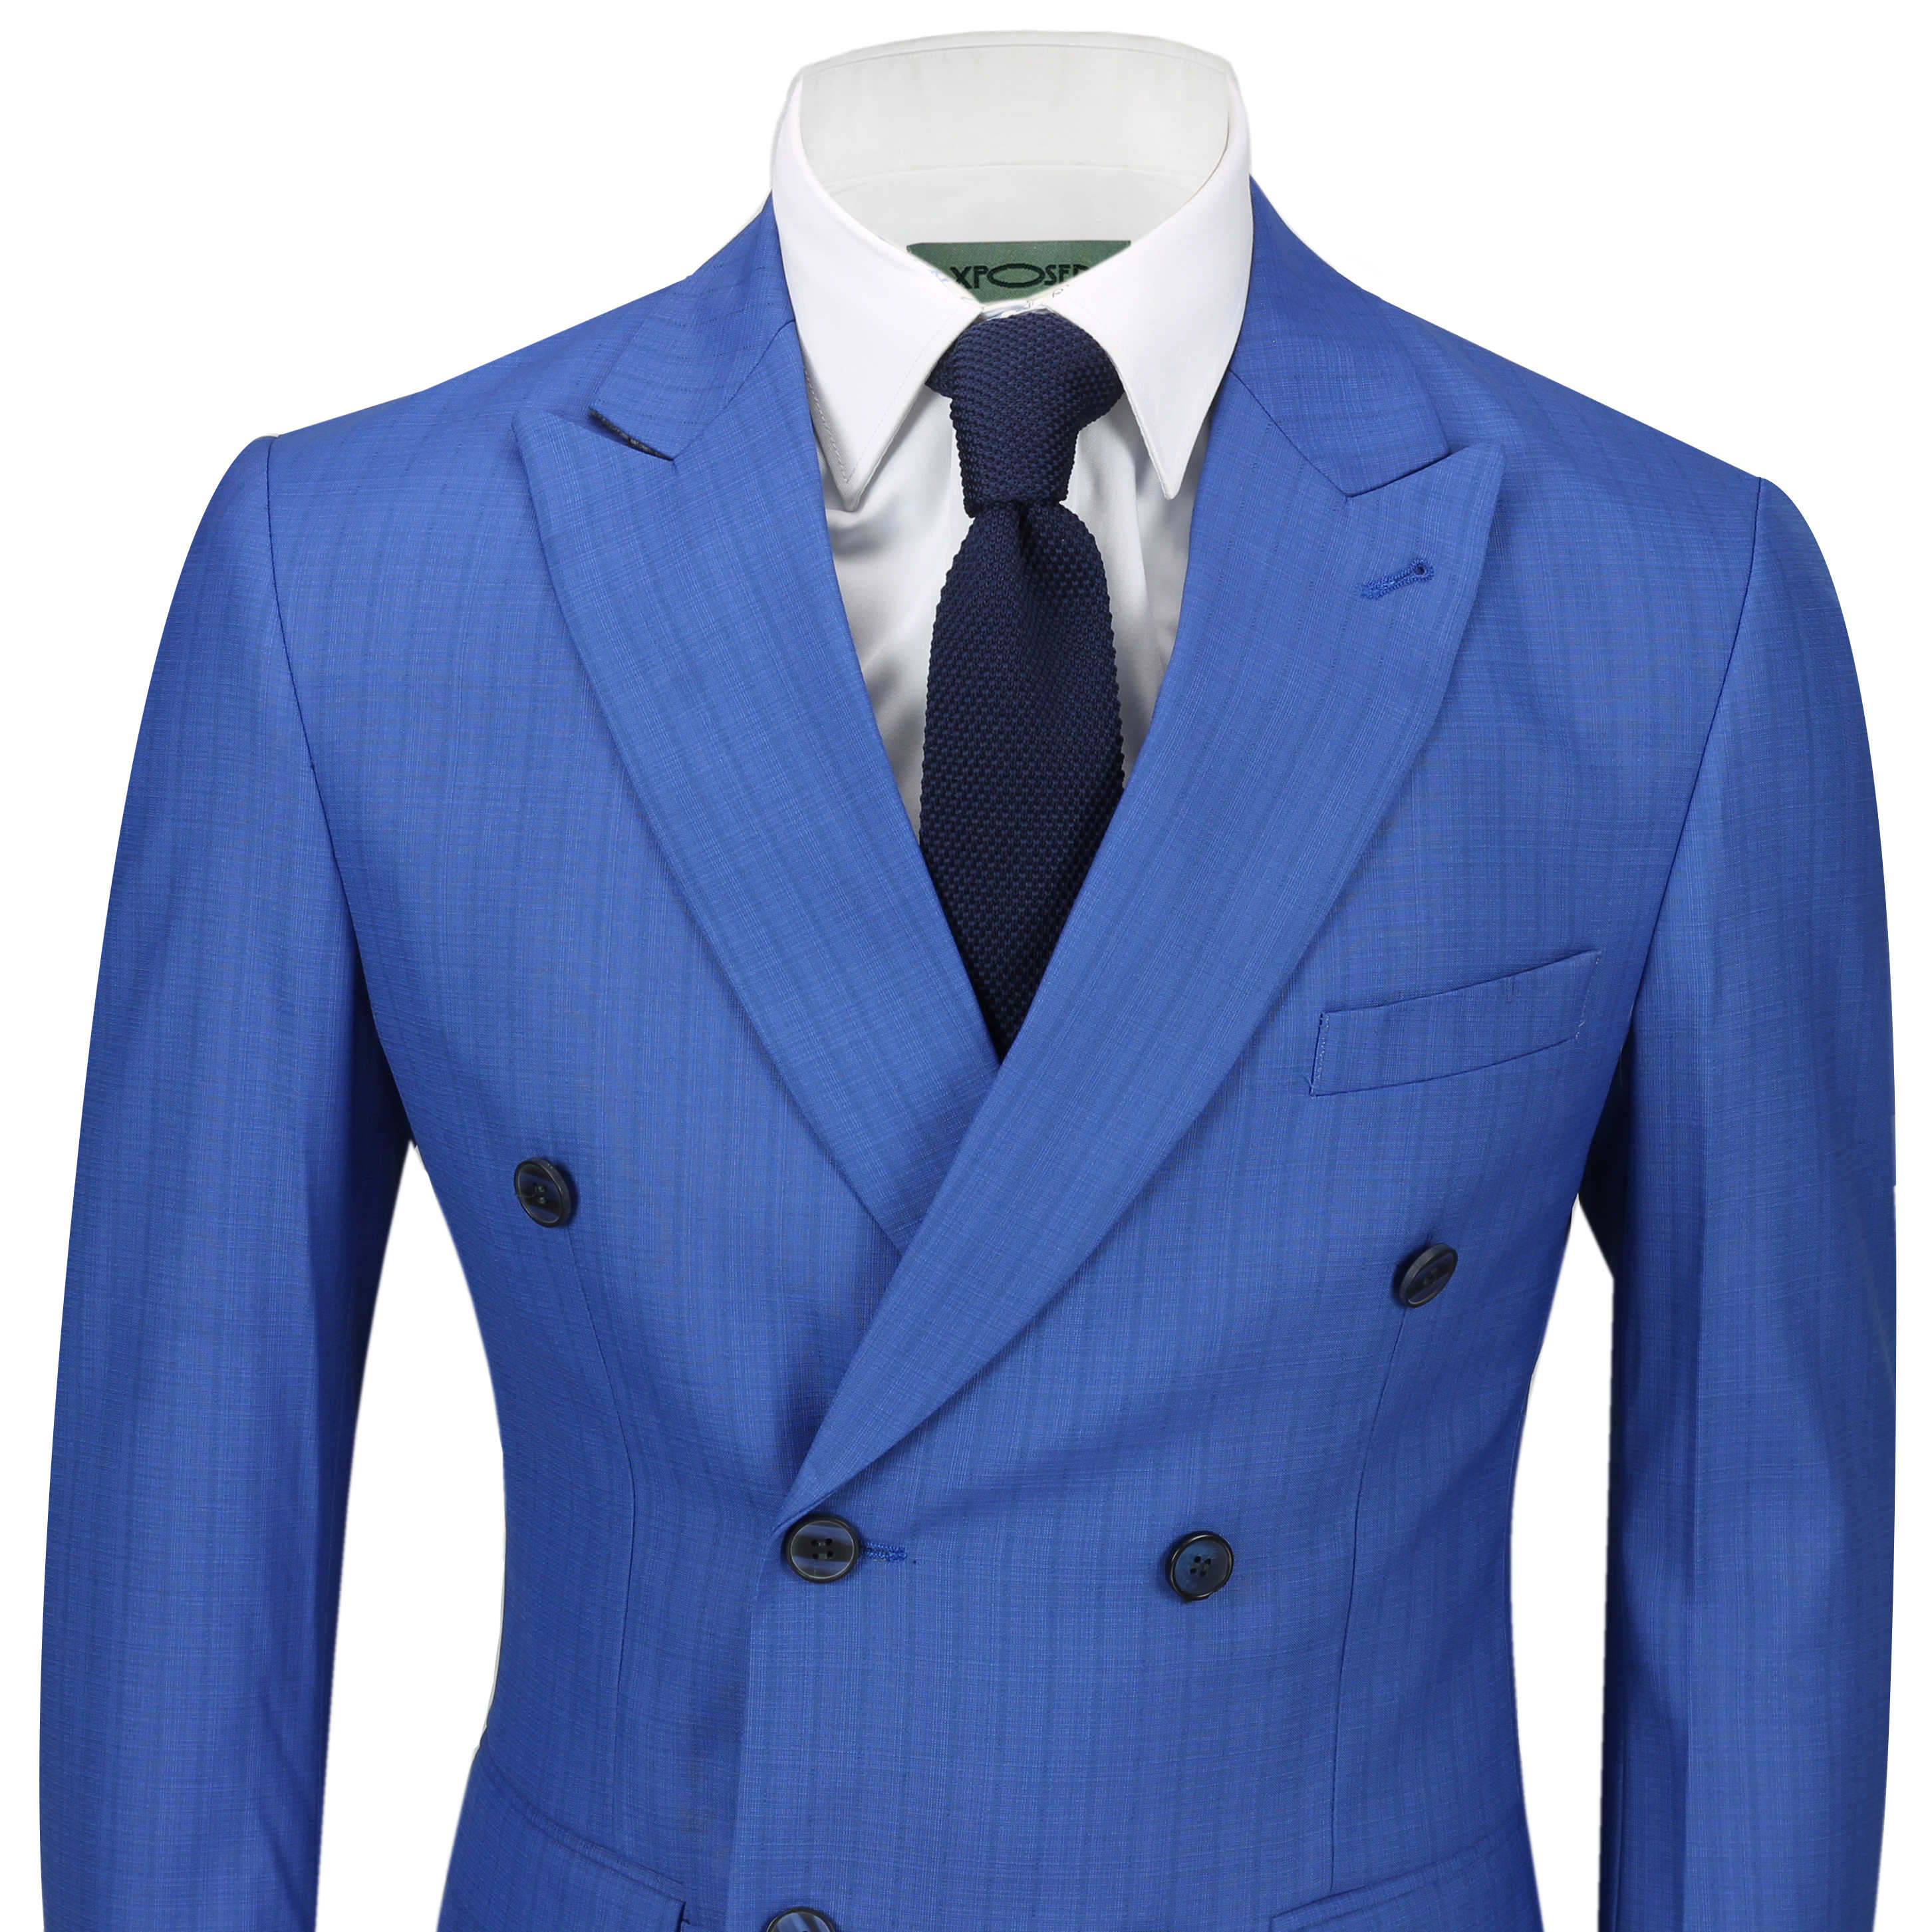 4f86ce98e97e Details about Mens 3 Piece Double Breasted Suit Retro Vintage Royal Blue  Check Tailored Fit